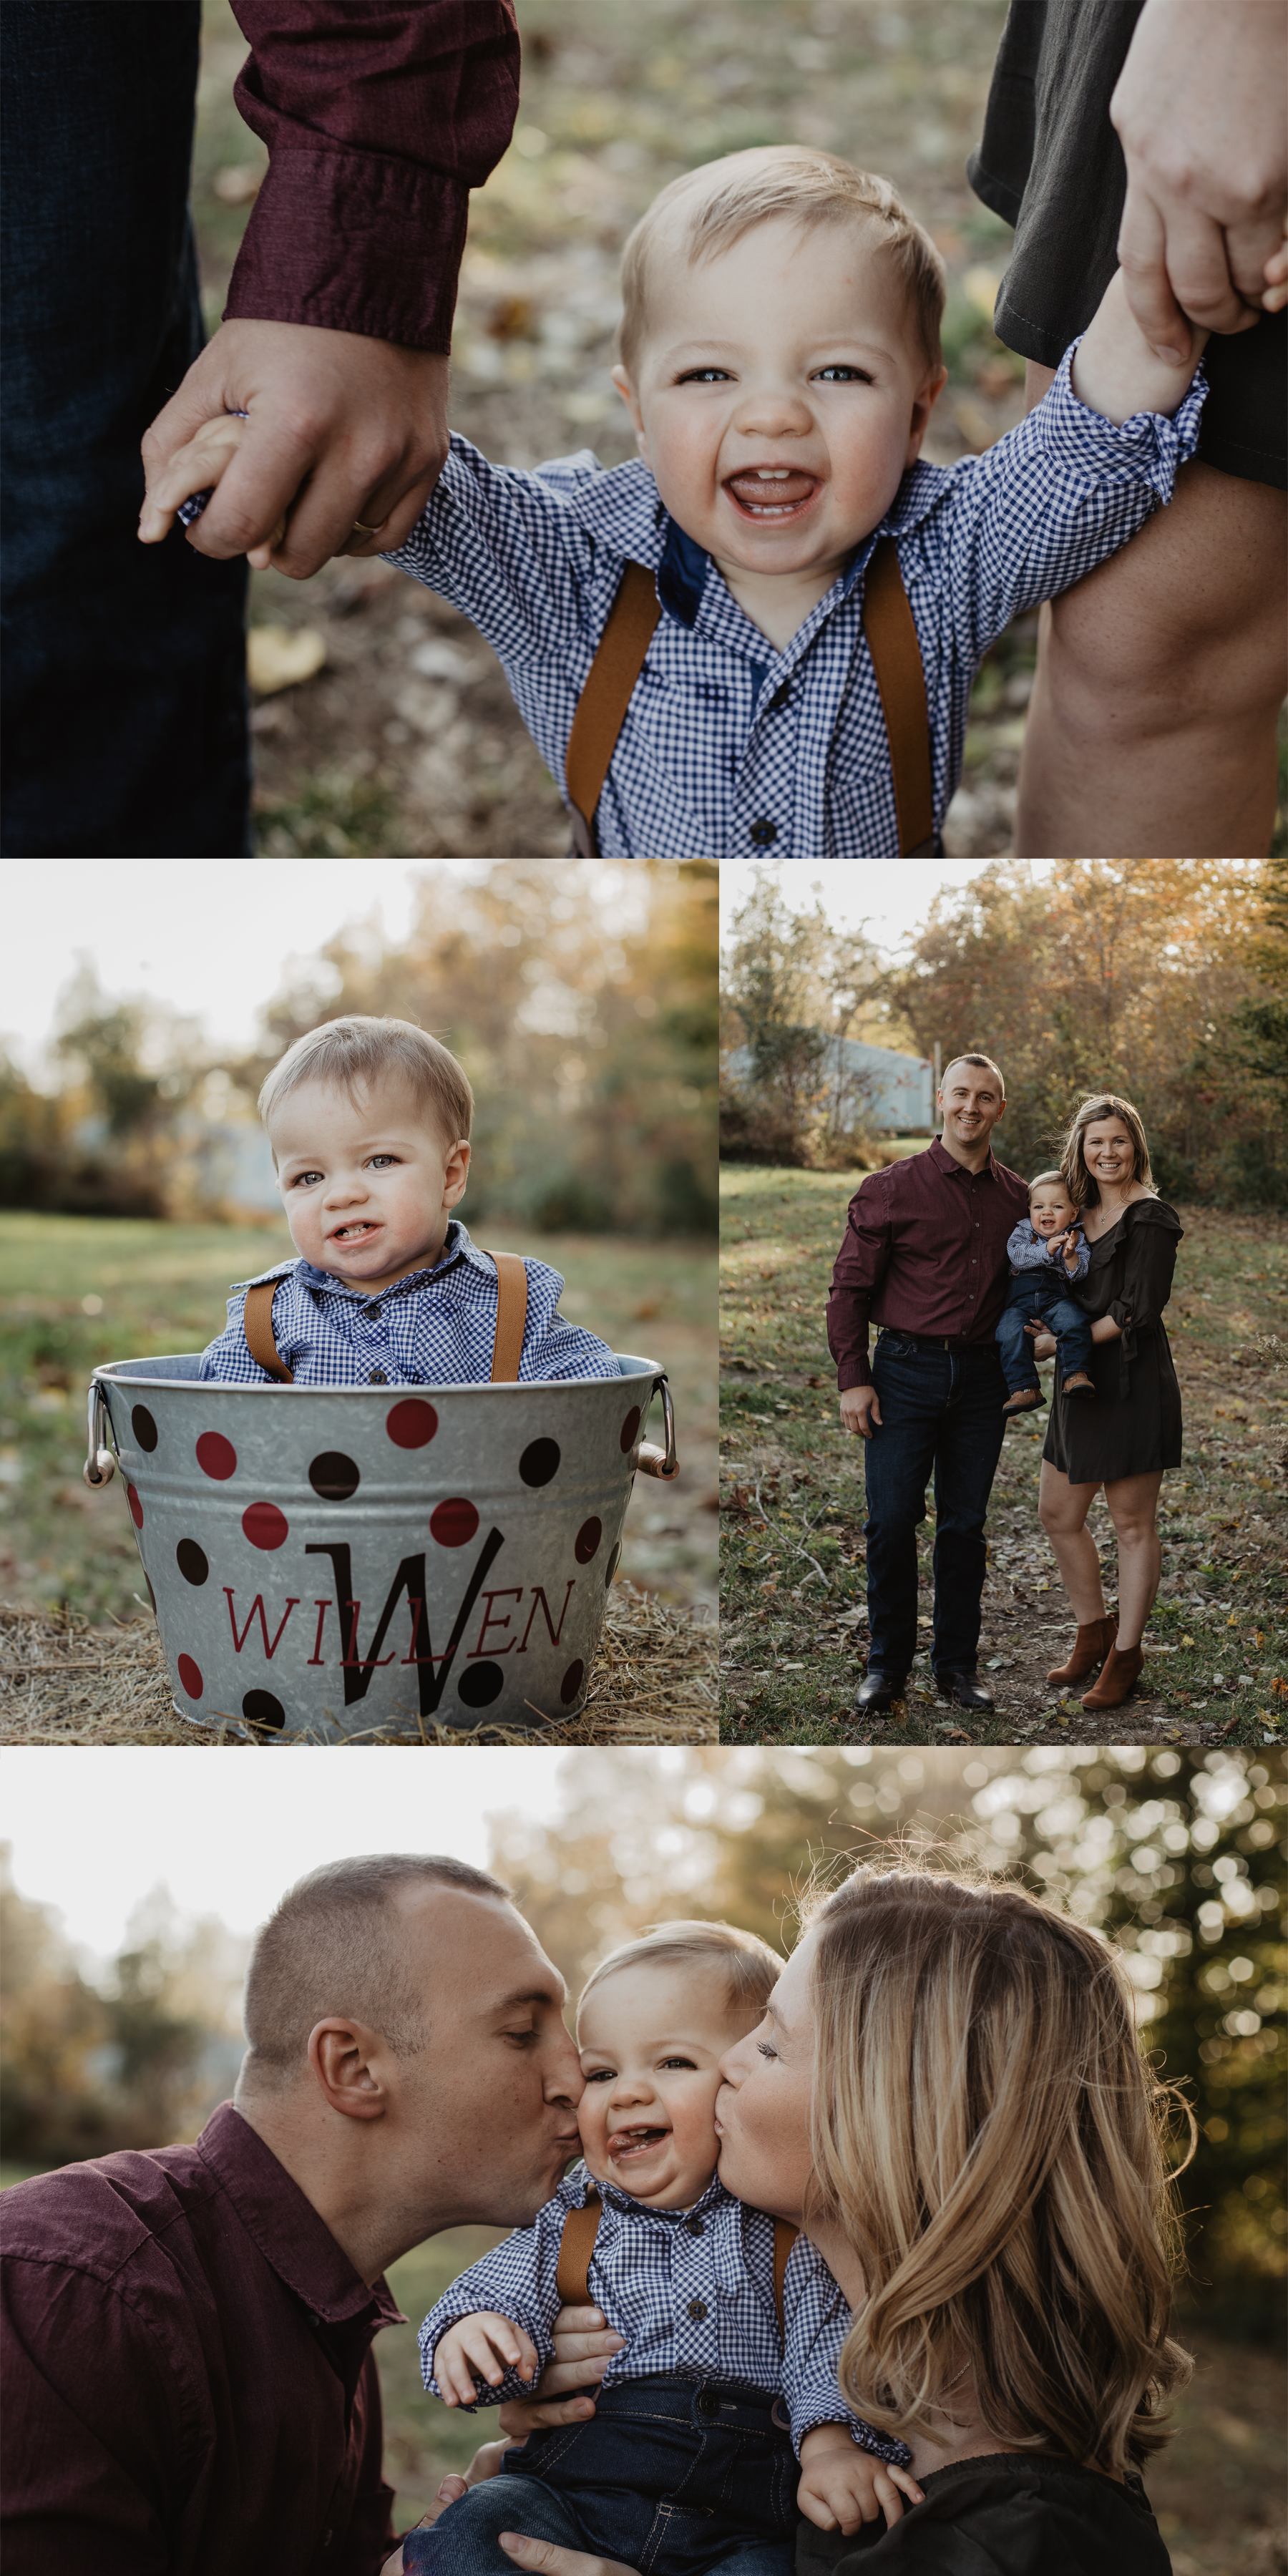 Family SessionWillen Ohio wedding photographer, Ohio